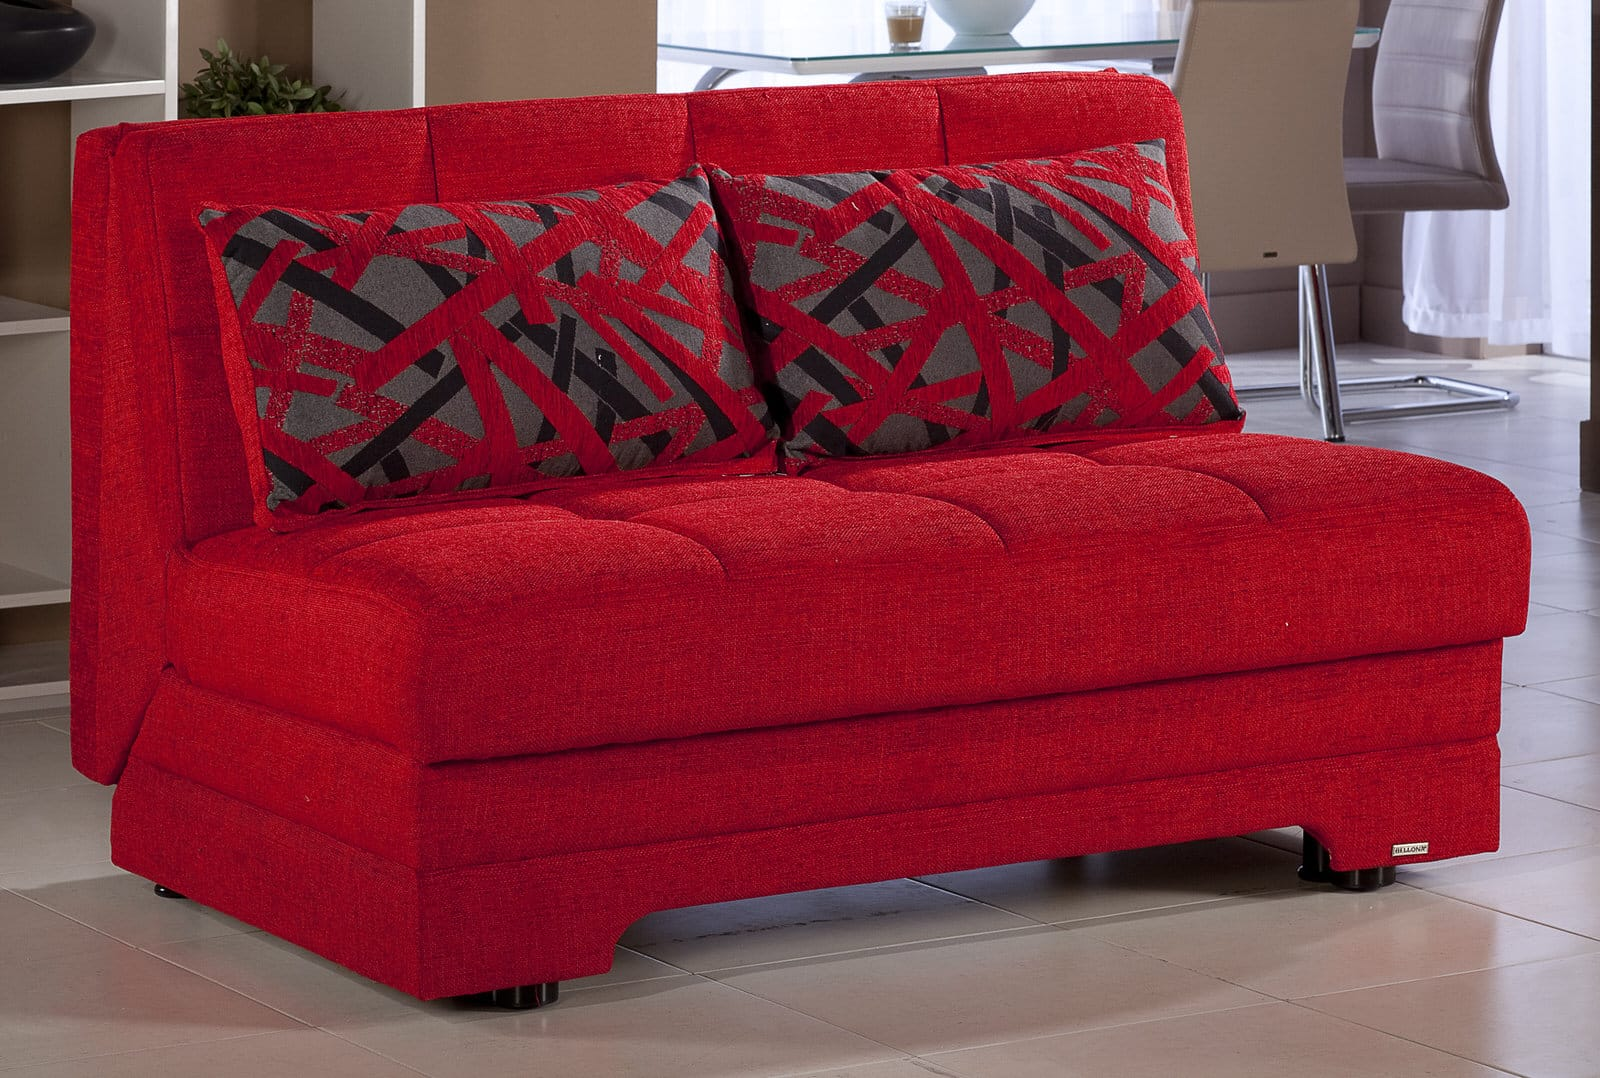 twist story red loveseat sleeper by sunset sunset istikbal